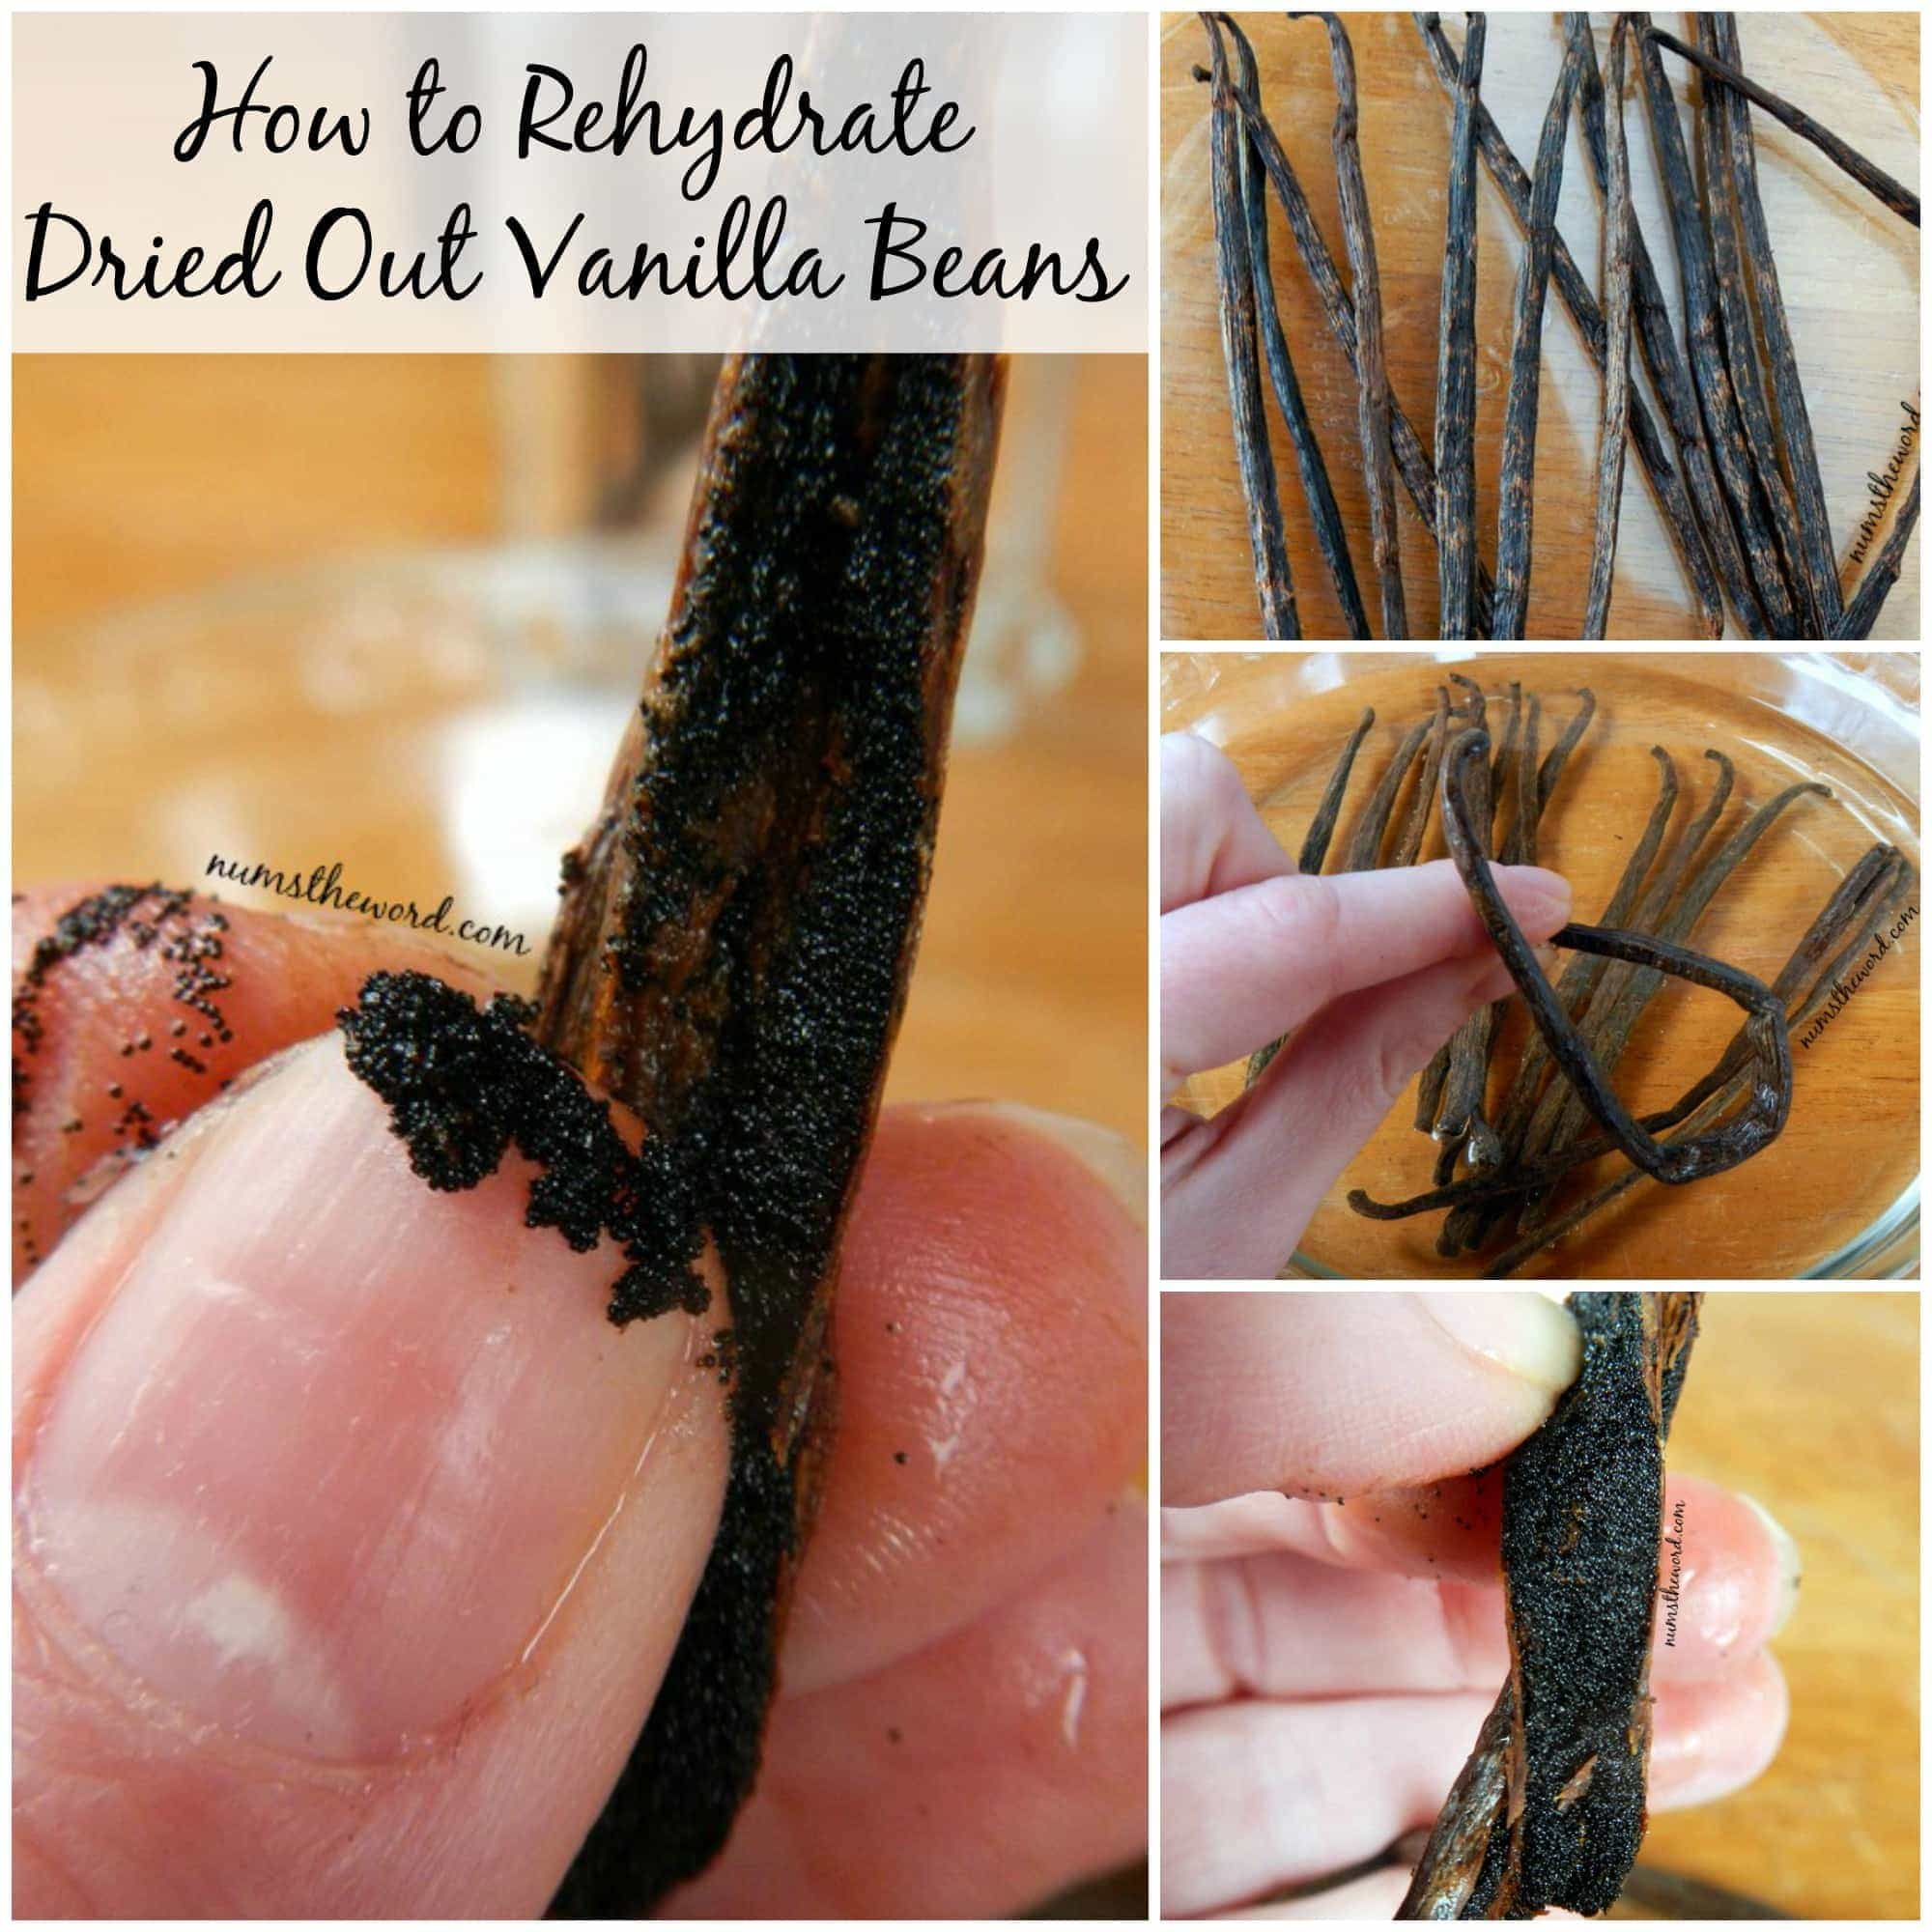 How to Rehydrate Dried Out Vanilla Beans